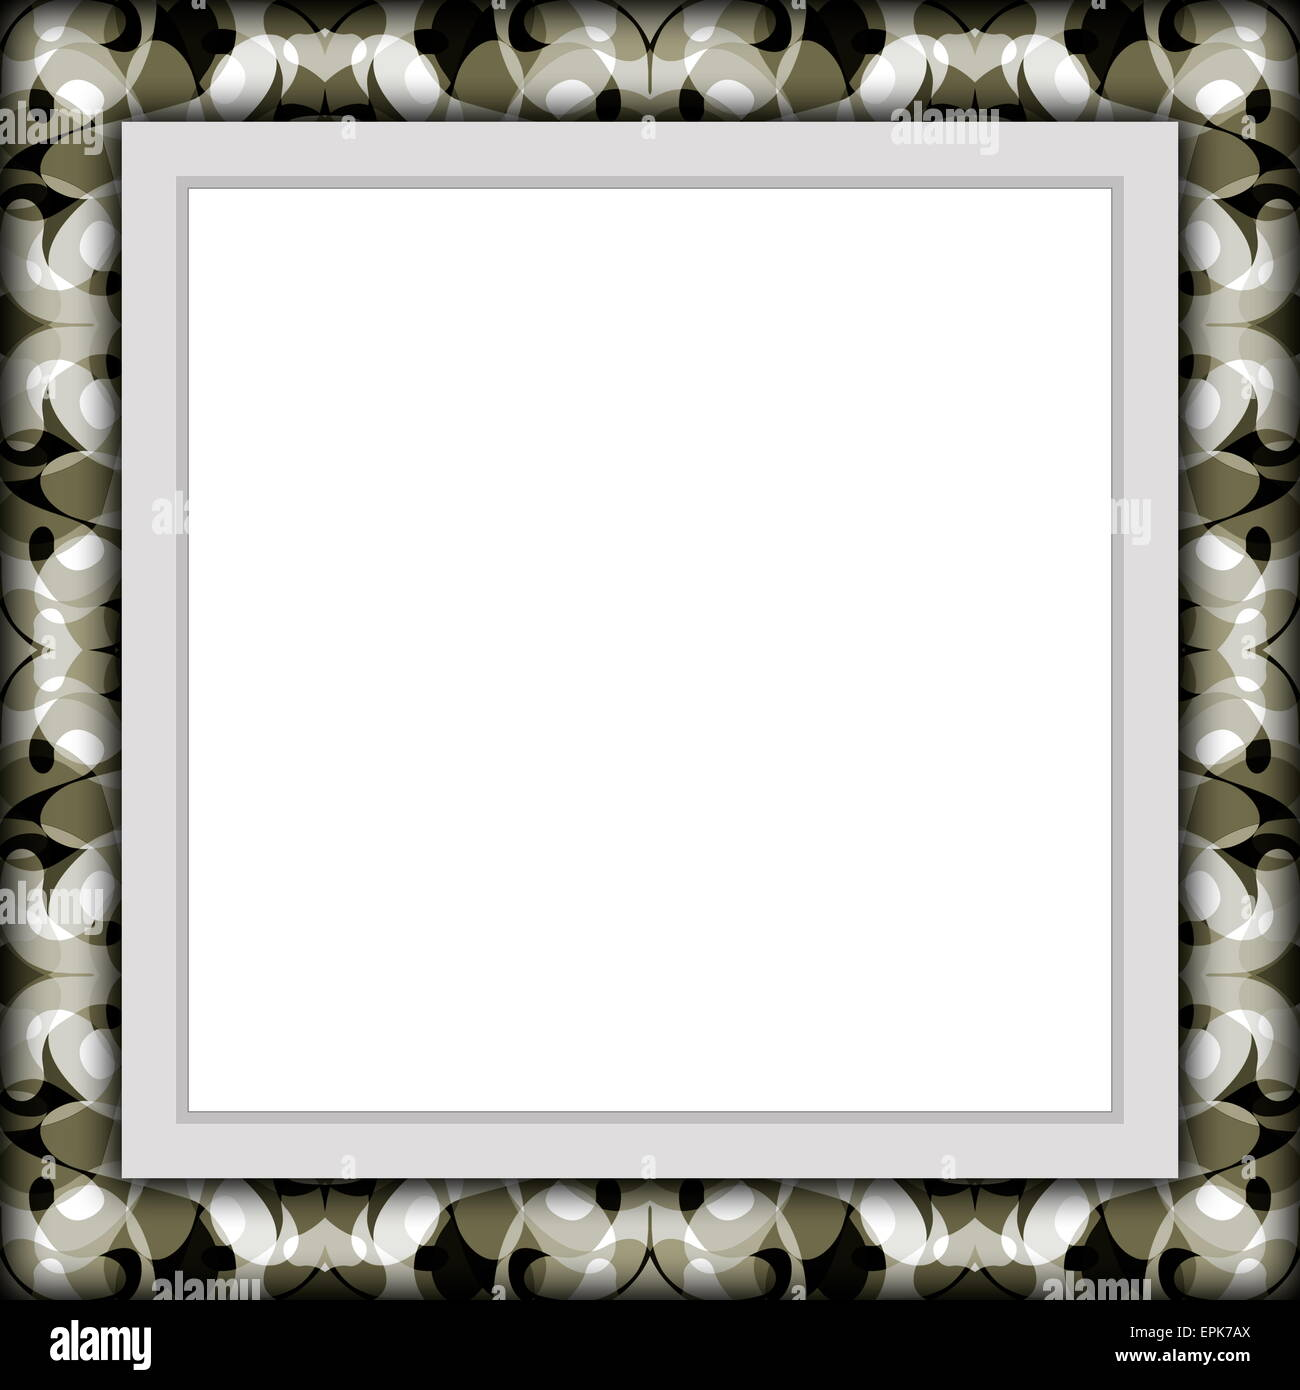 frame with passepartout Stock Photo: 82786786 - Alamy